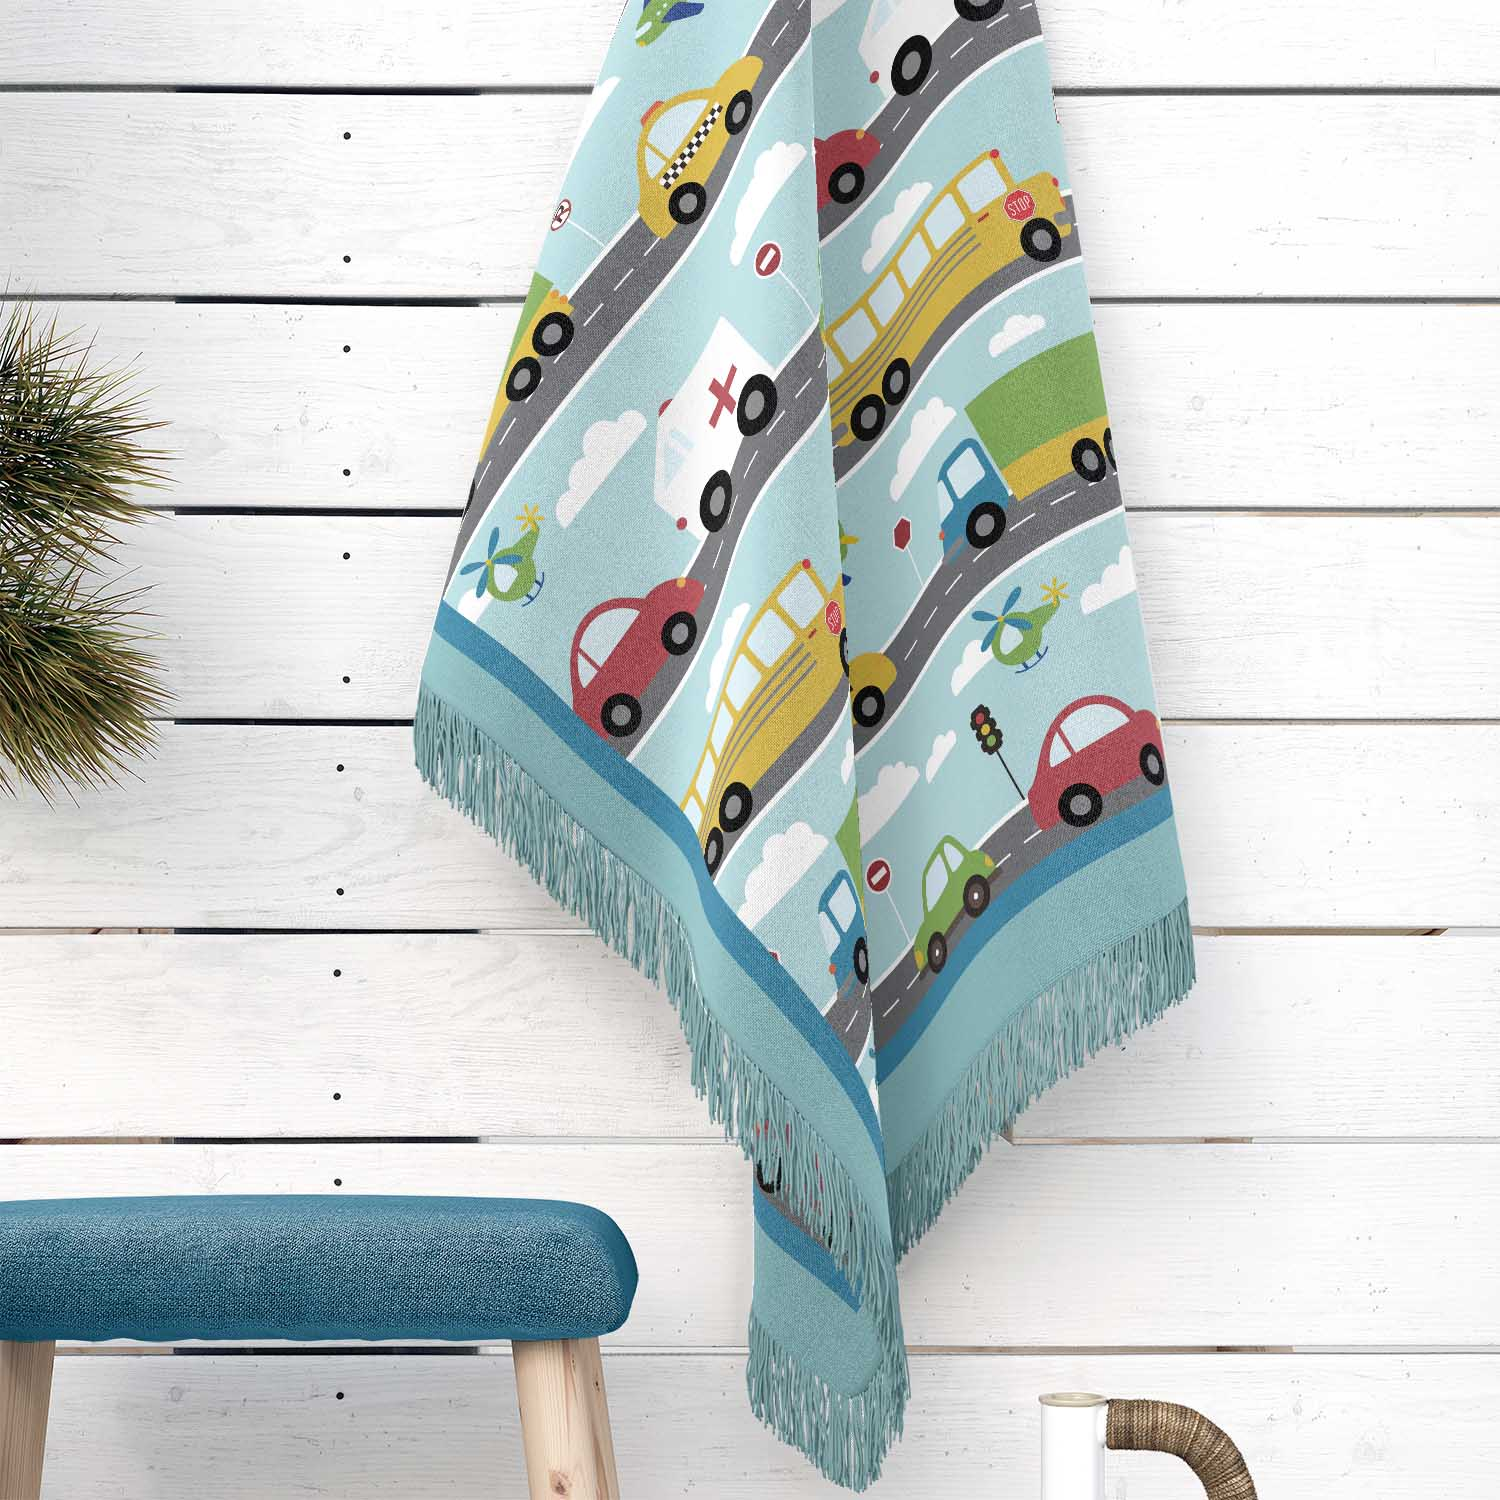 PKWOV00020-ThingsThatGoVroom-WOVENBLANKET50x60 Things That Go Vroom Transportation Theme Boys Kids Woven Cotton Throw Blanket Room Decor Accesories by Pickleberry Kids